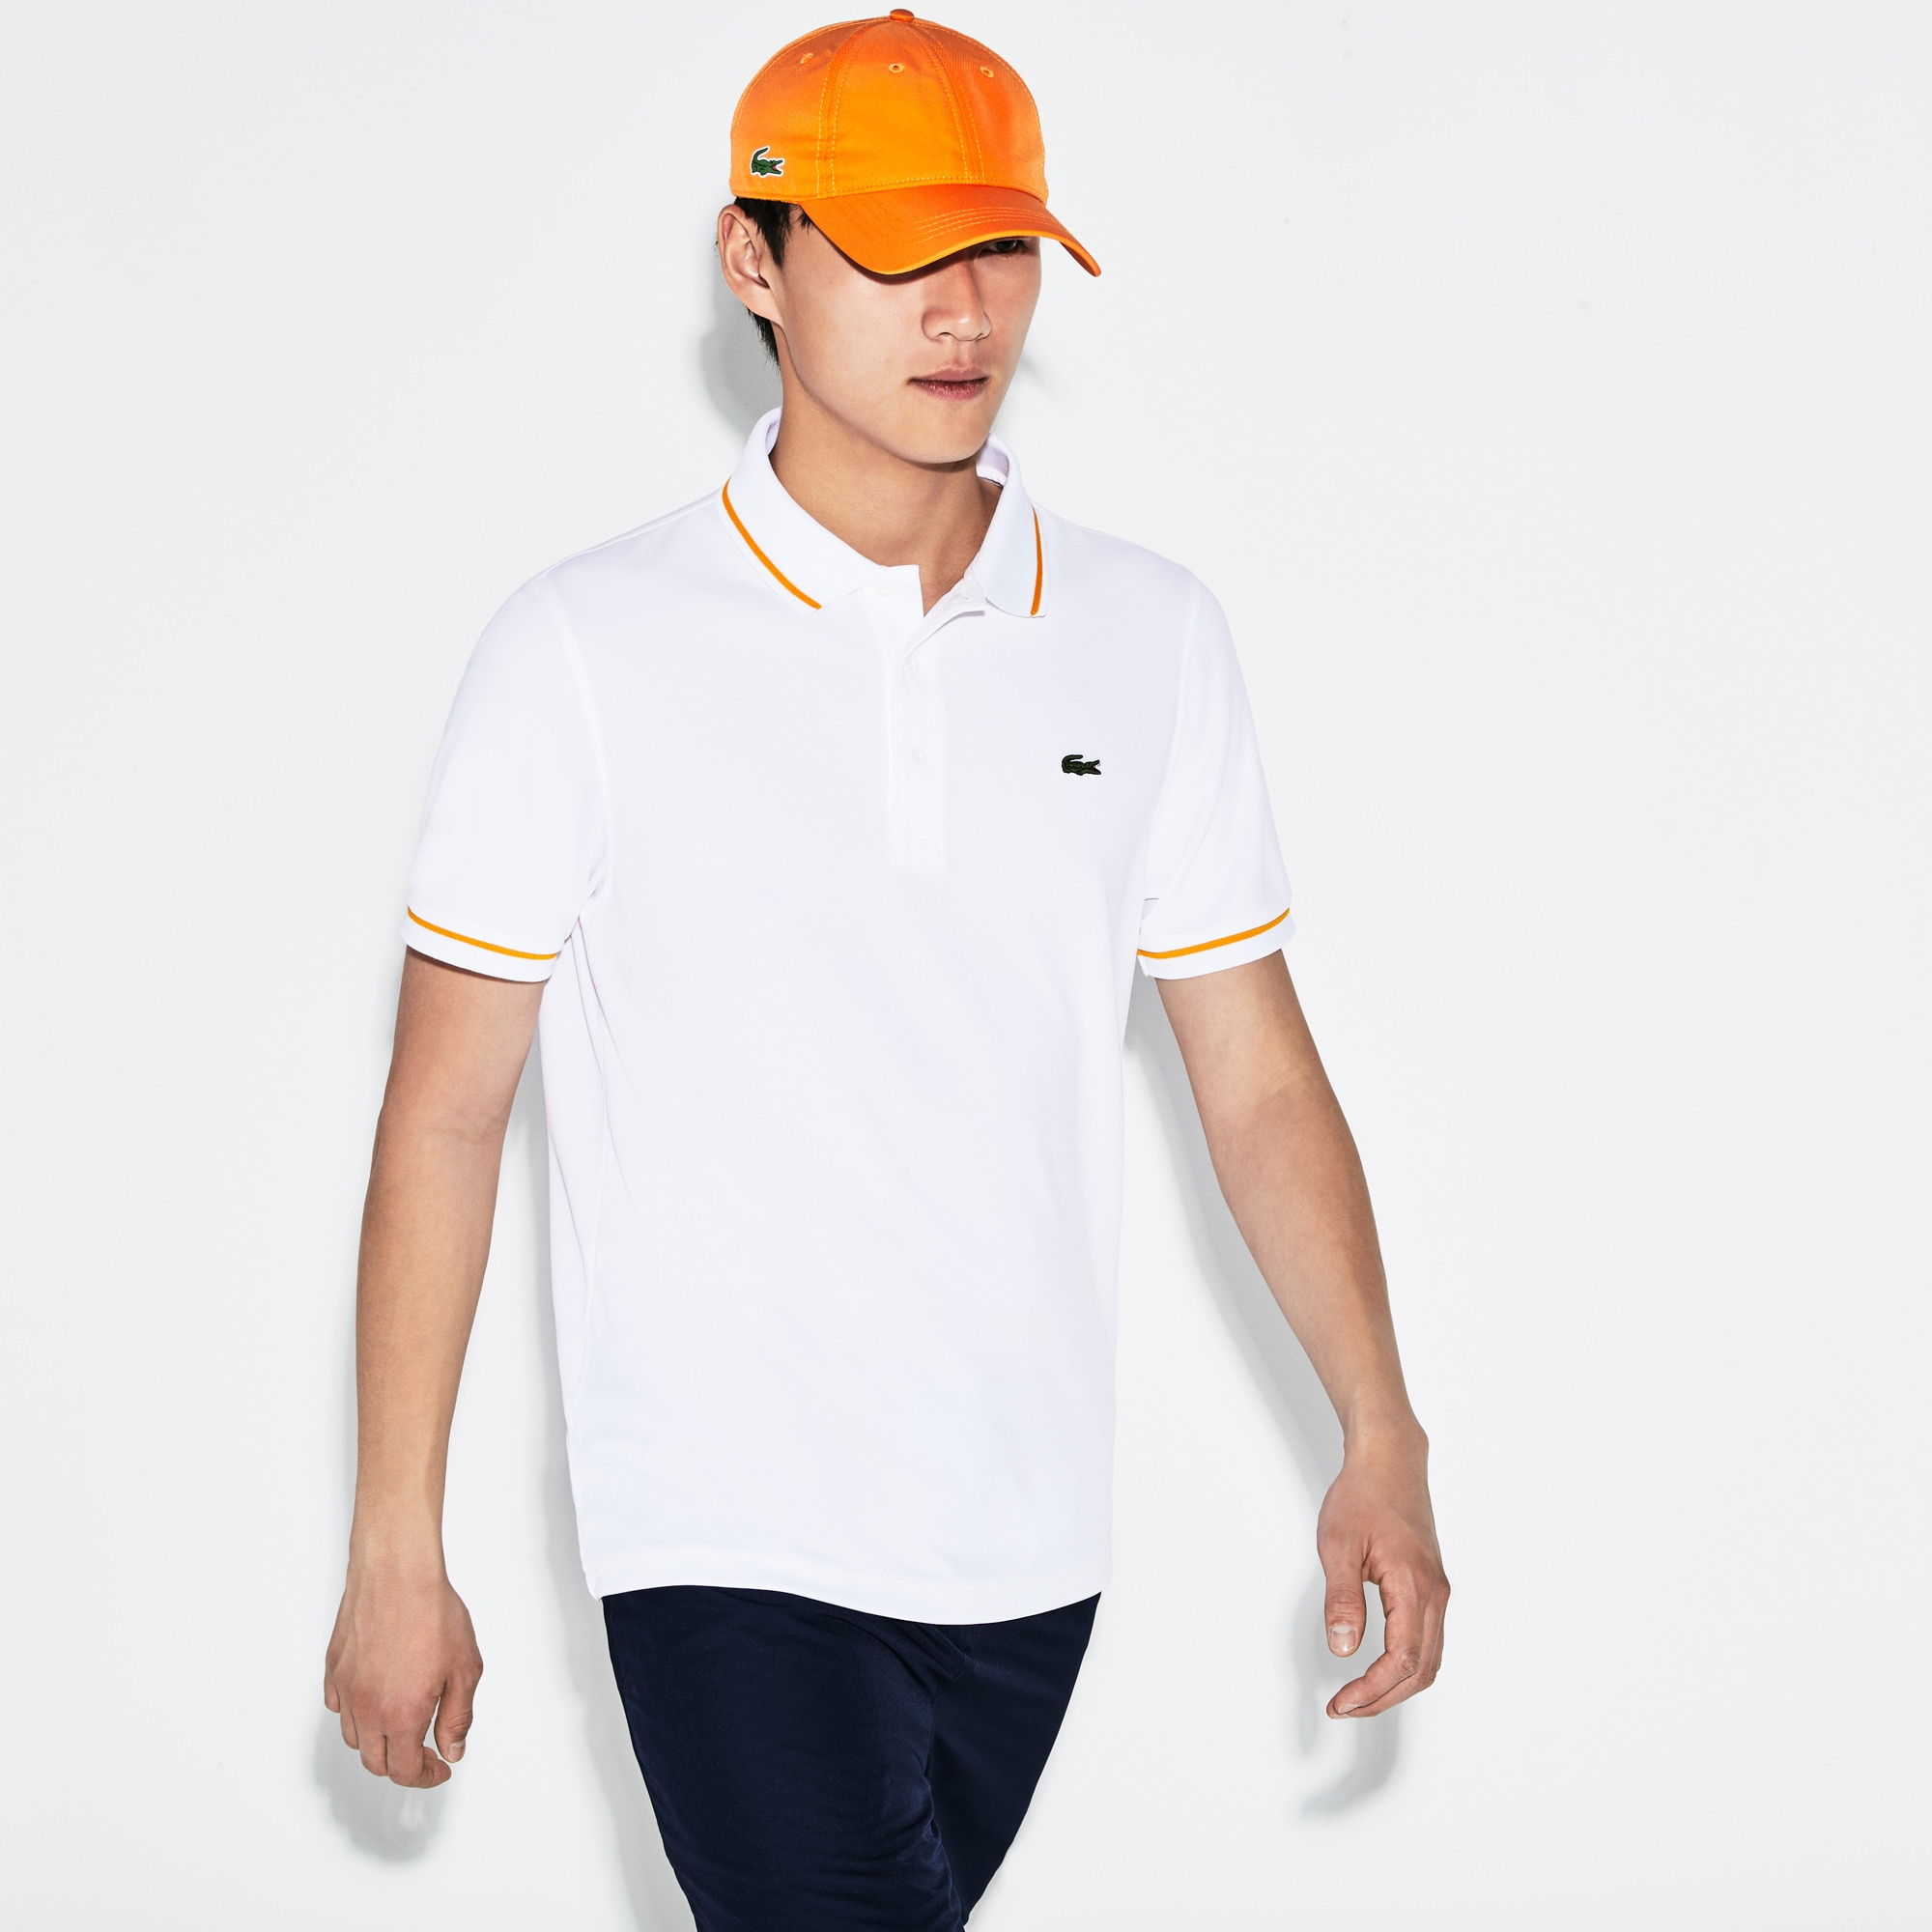 7160988cc9 Men's SPORT Tennis Piped Technical Piqué Polo Shirt | LACOSTE